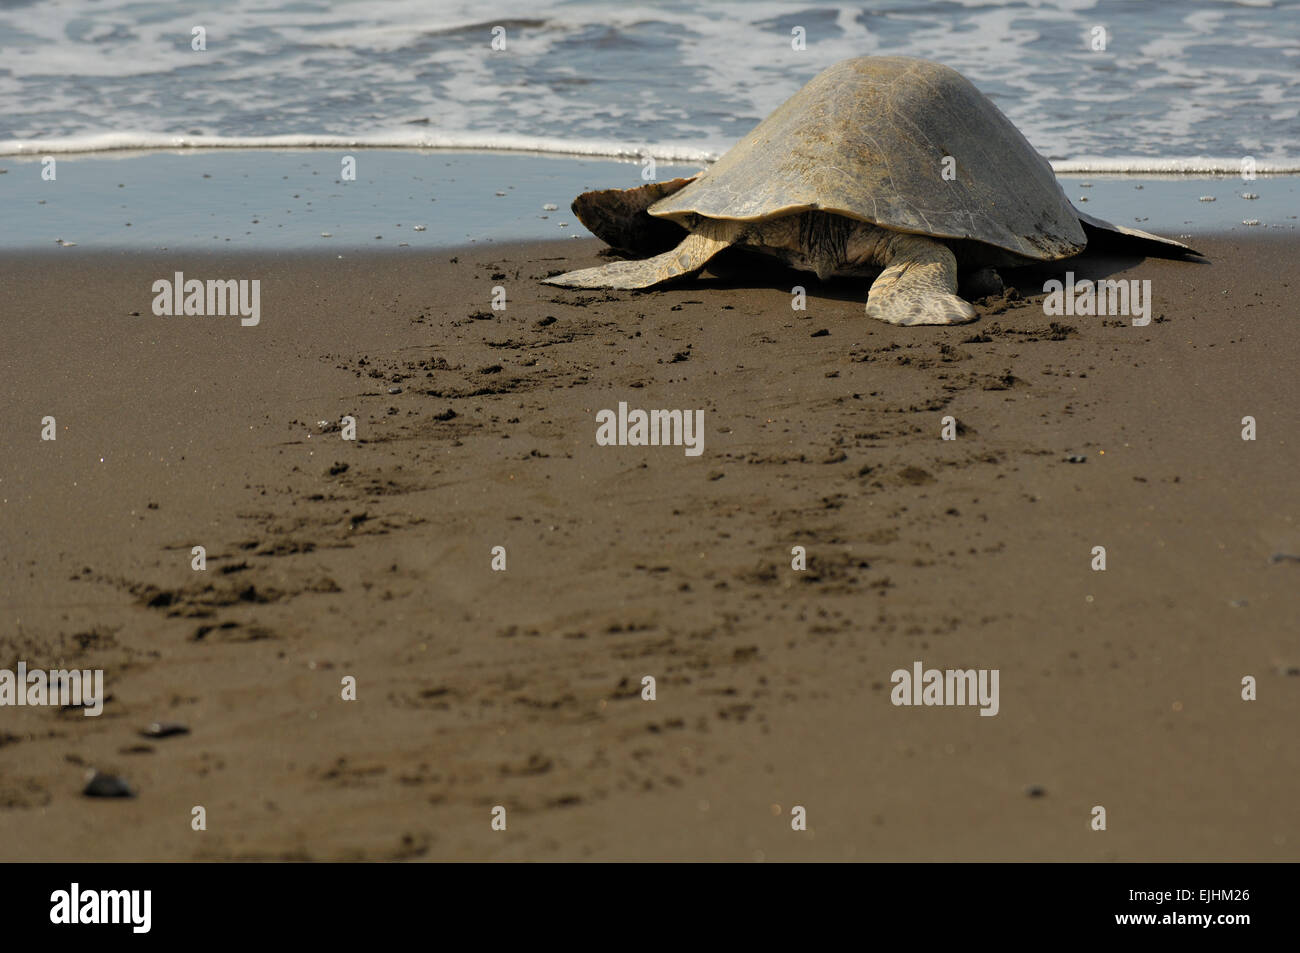 The olive ridley sea turtles (Lepidochelys olivacea)  are famous for their behaviour to nest also during the day. - Stock Image